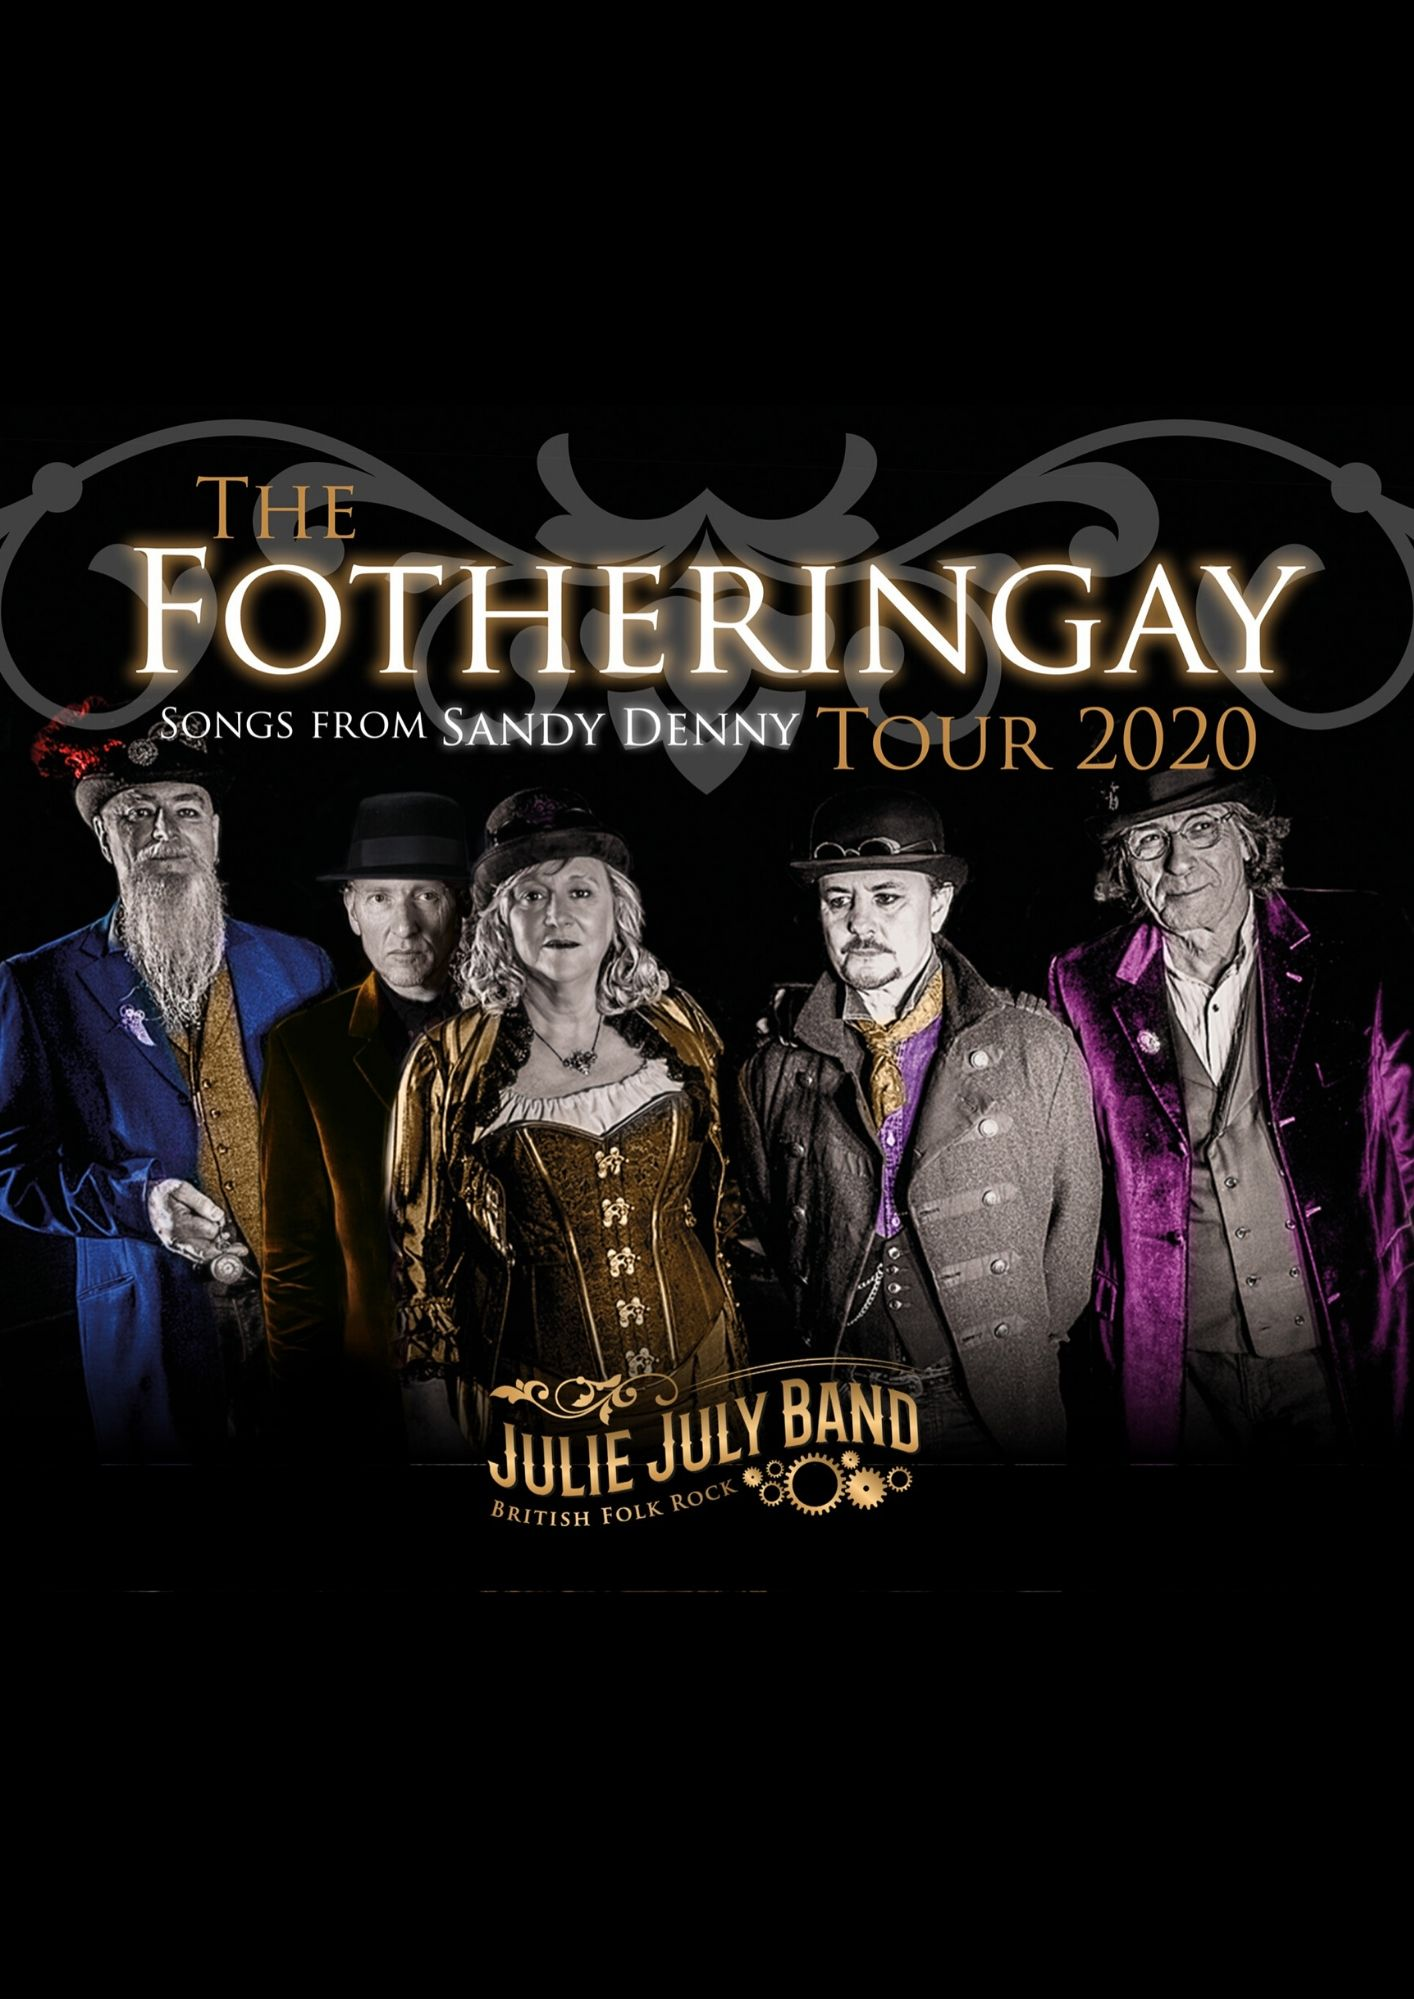 The Fotheringay Tour: Songs of Sandy Denny